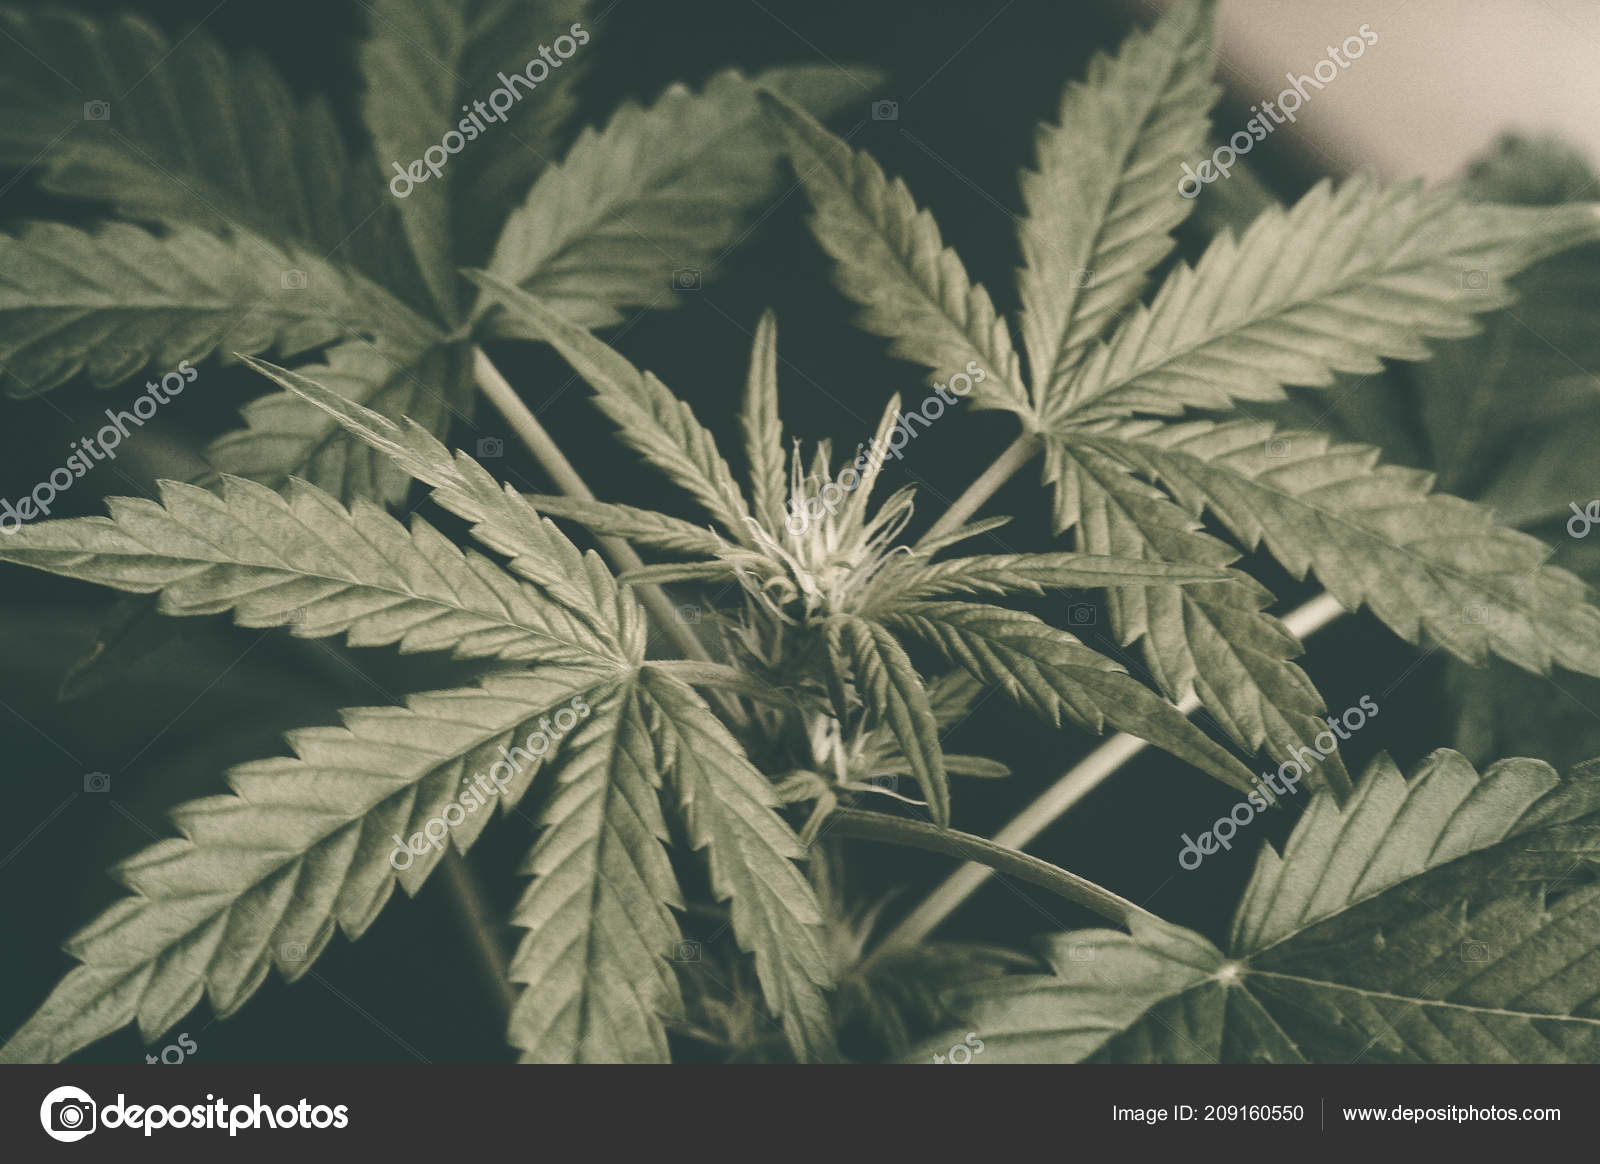 Unique Beautiful Leaves Of Marijuana Cannabis Plant Large And Detail Background Indor Groow Stock Photo C Cendeced 209160550